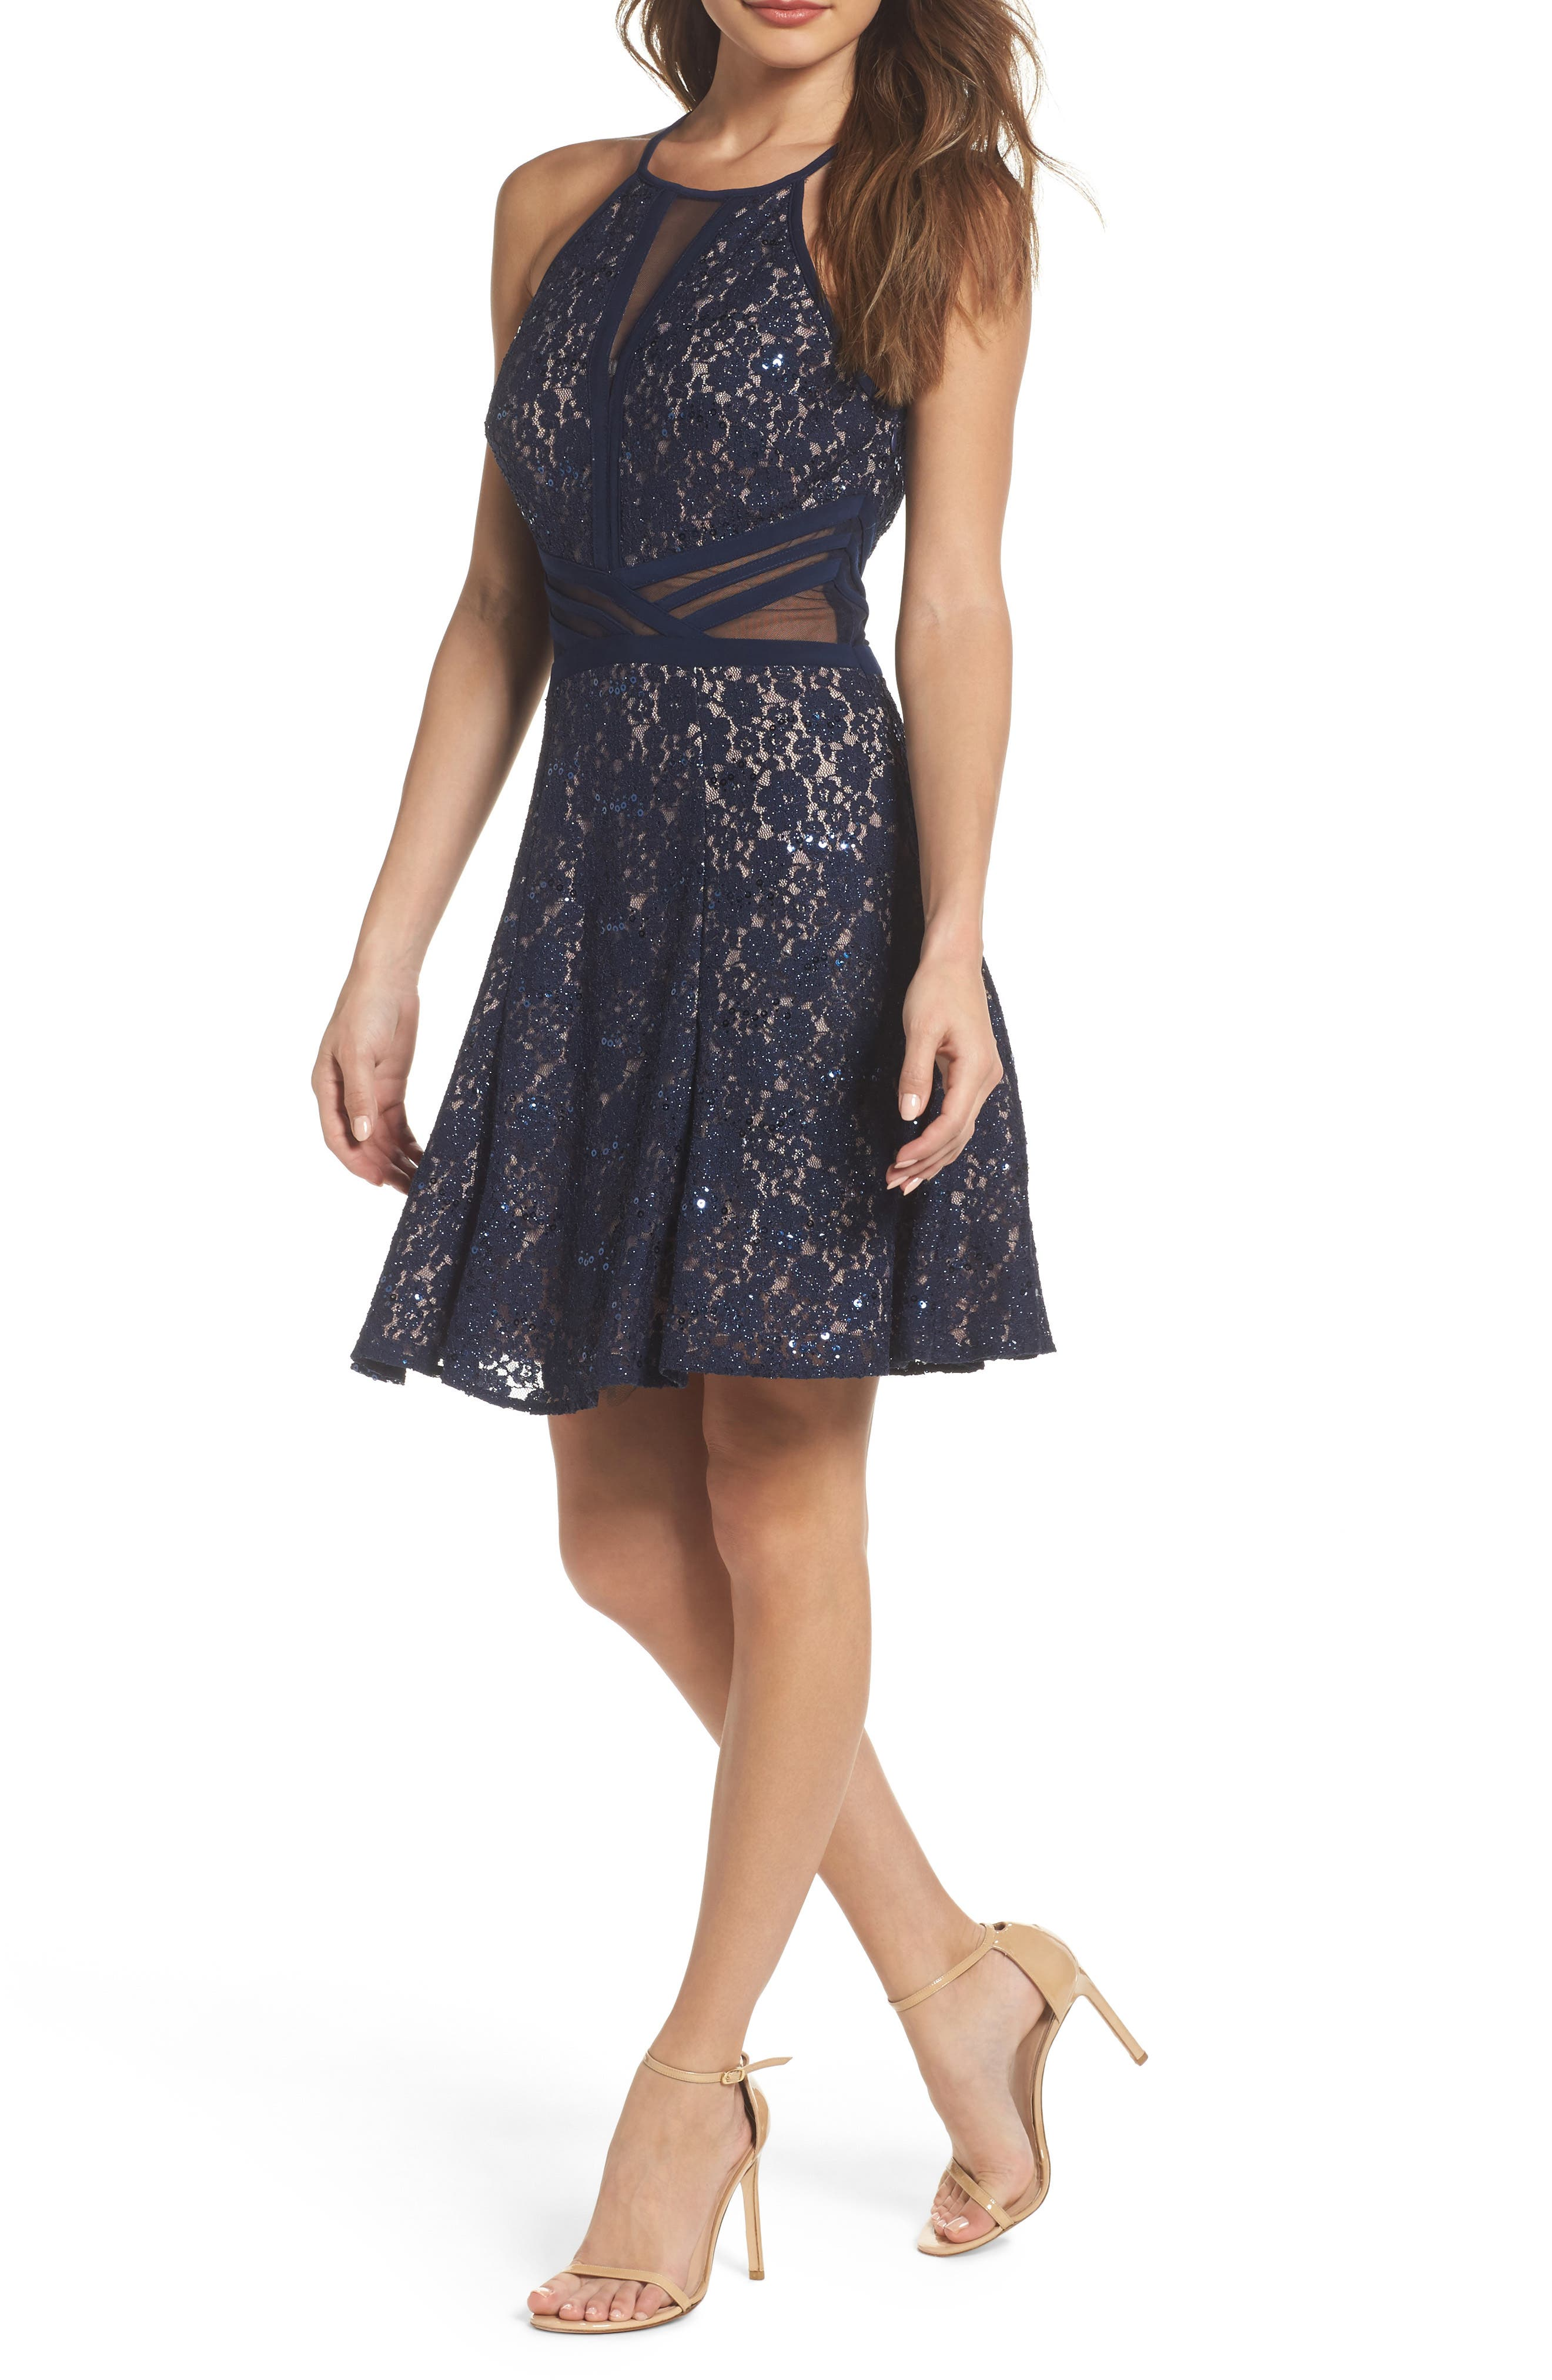 Morgan & Co. Sheer Inset Lace Fit & Flare Dress, /2 - Blue